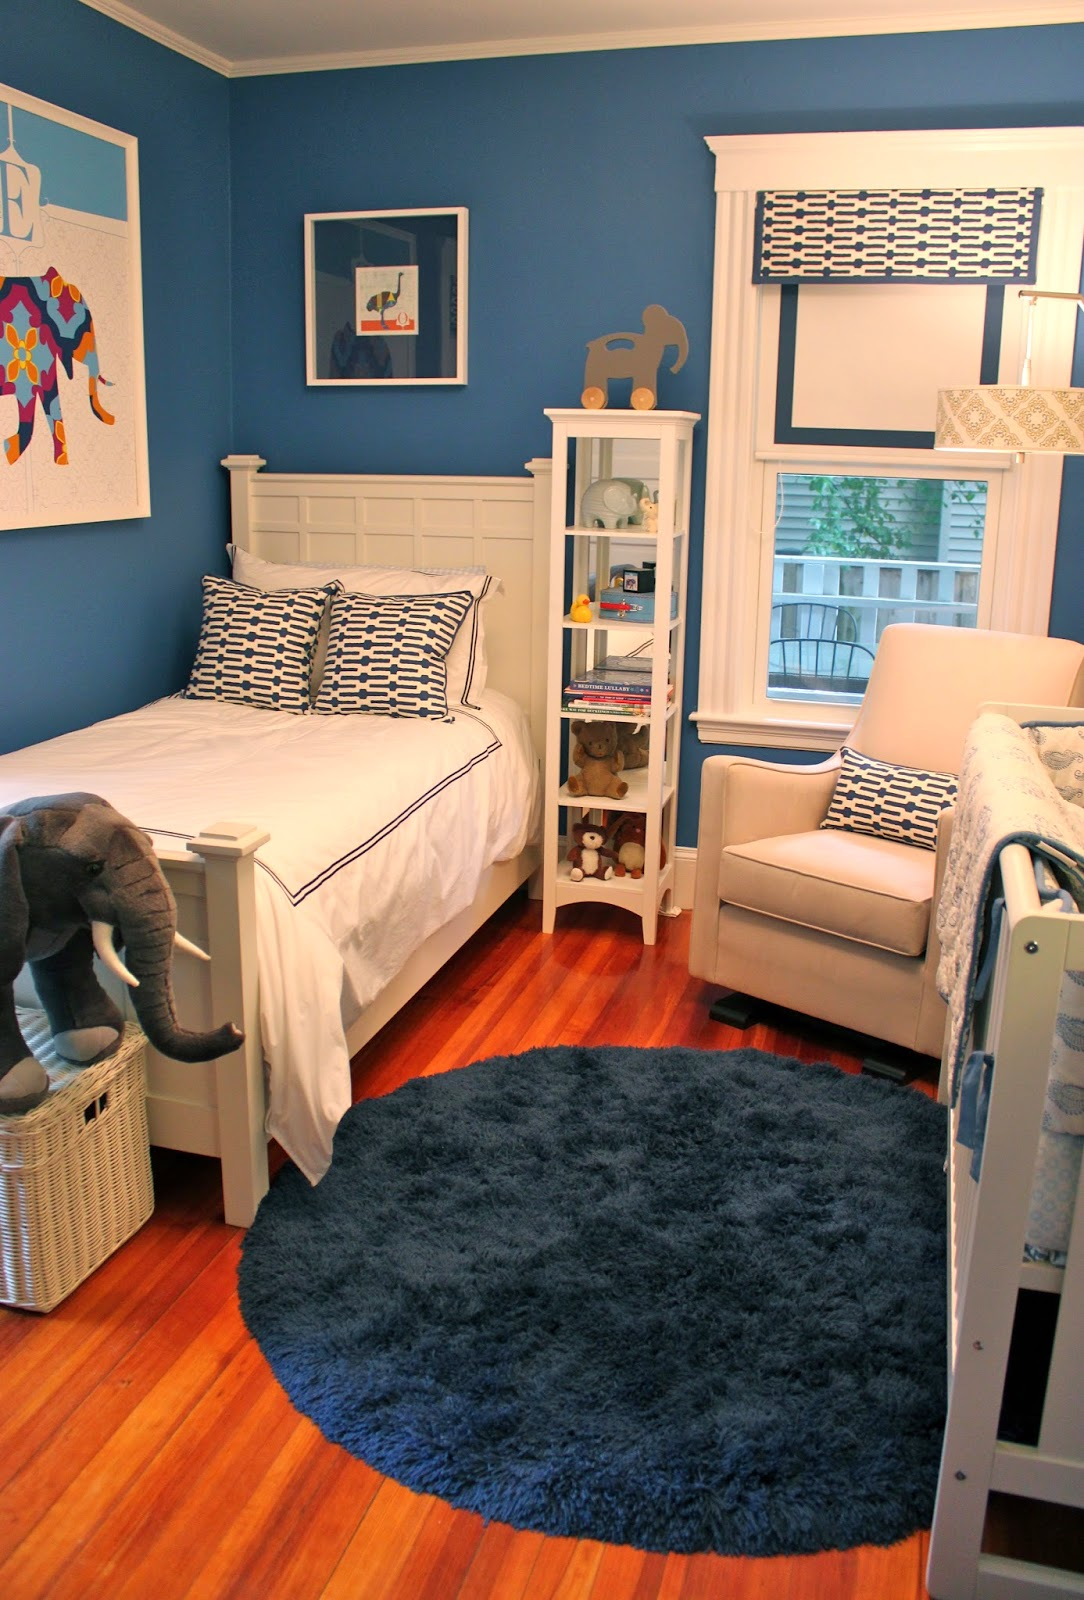 Use Some Bold Colors To Paint your son's Room